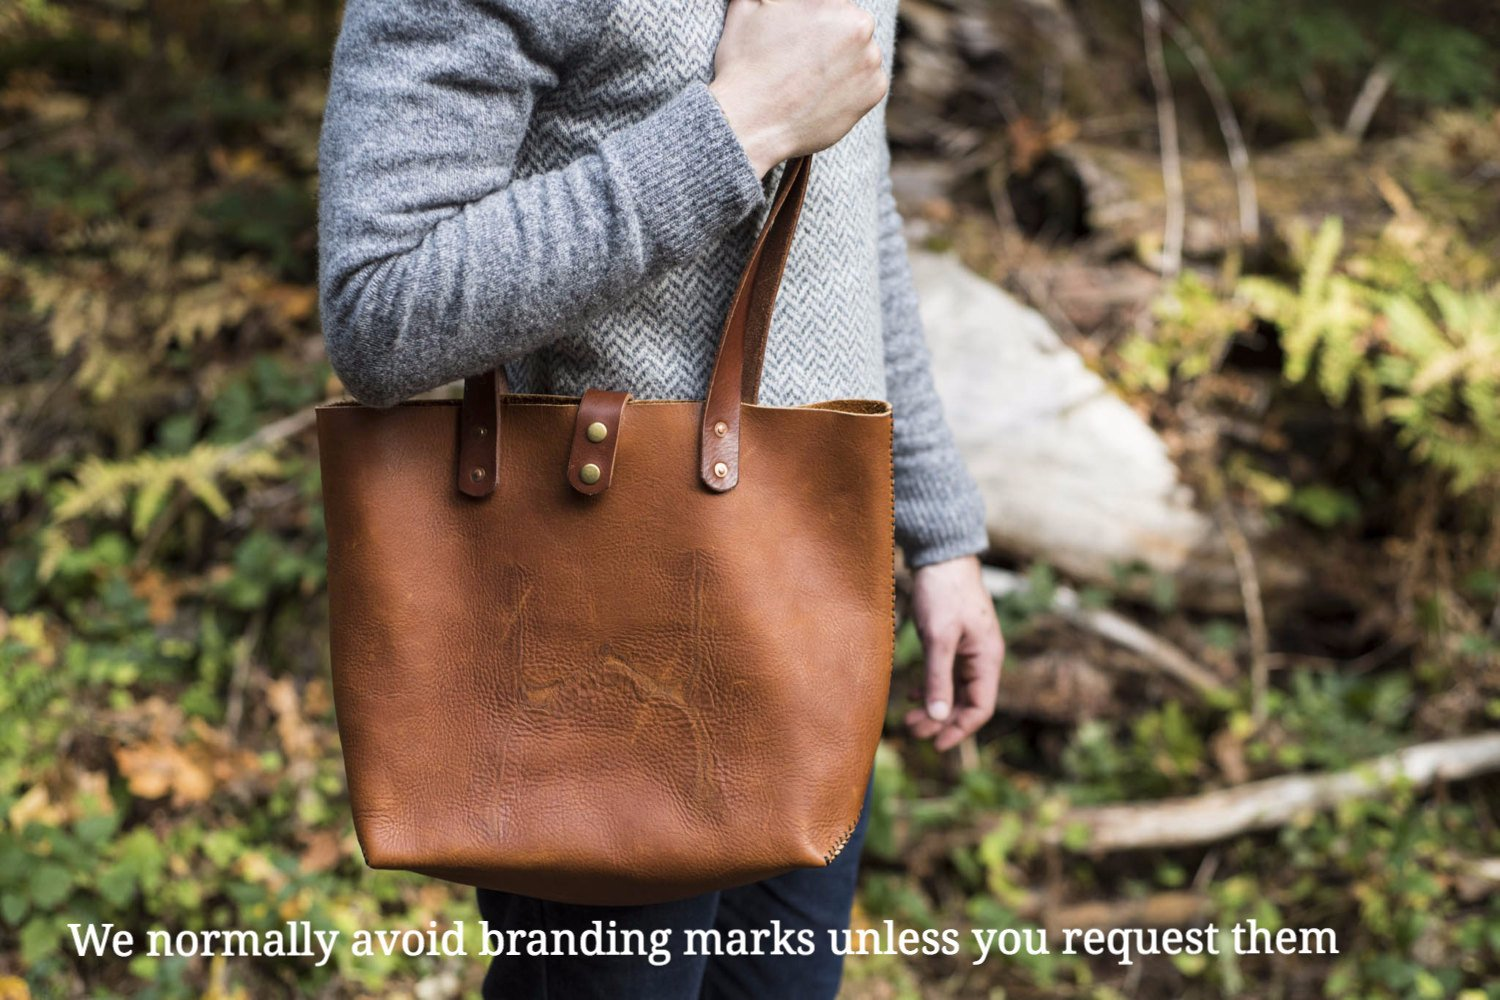 Hand and Hide Handmade Leather Totes and Bags